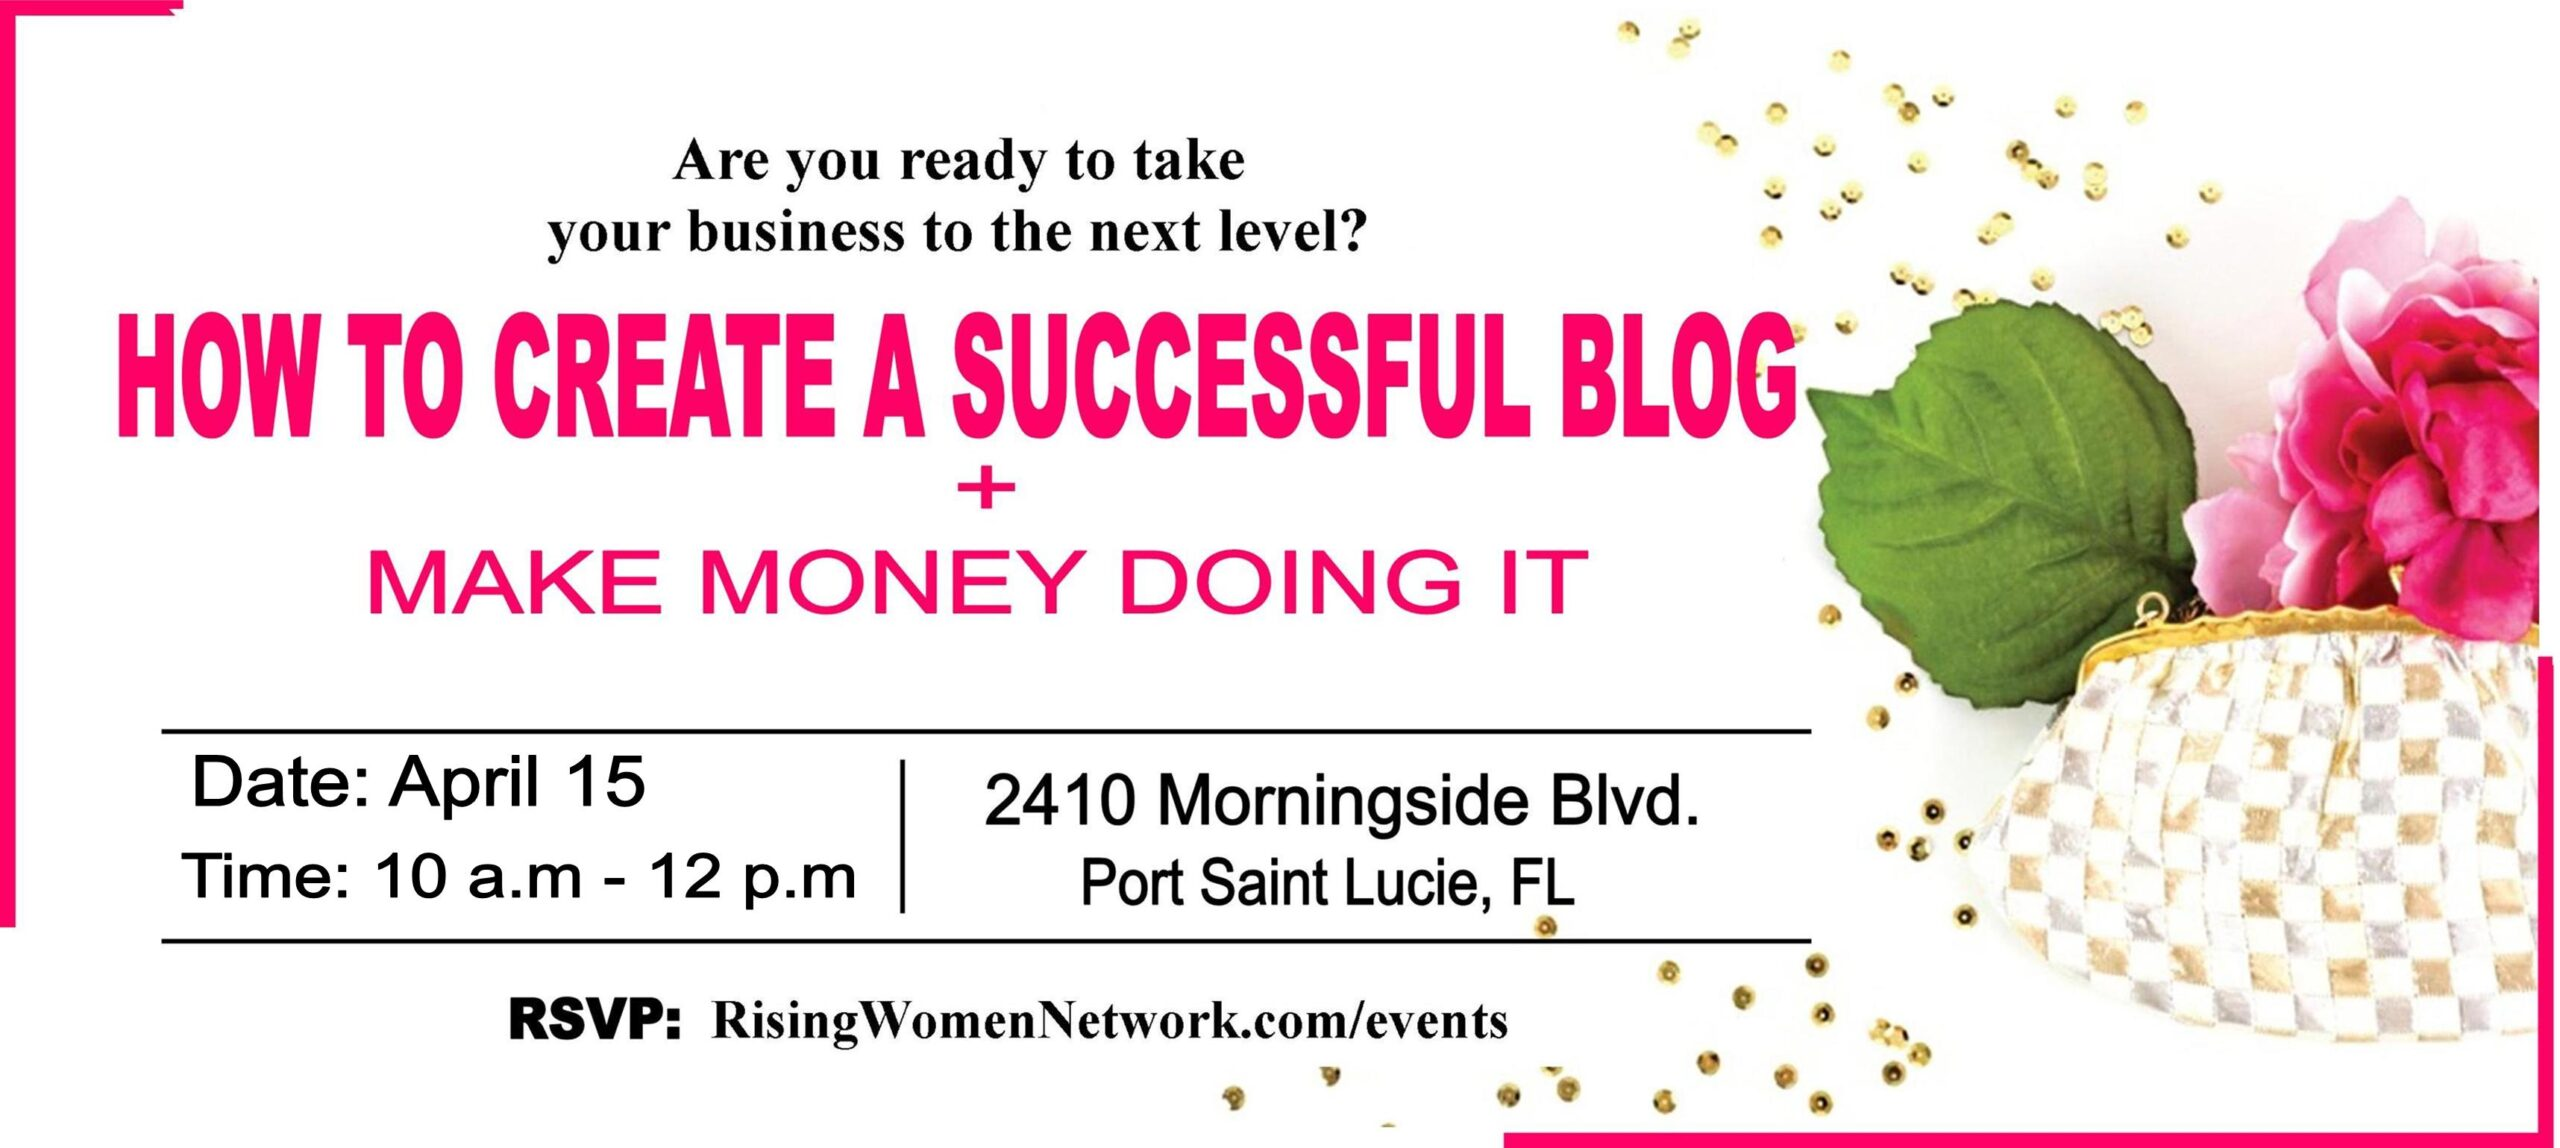 Are you ready to take your business to the next level? We are here to help you make it happen. We will show you how to create a successful blog.